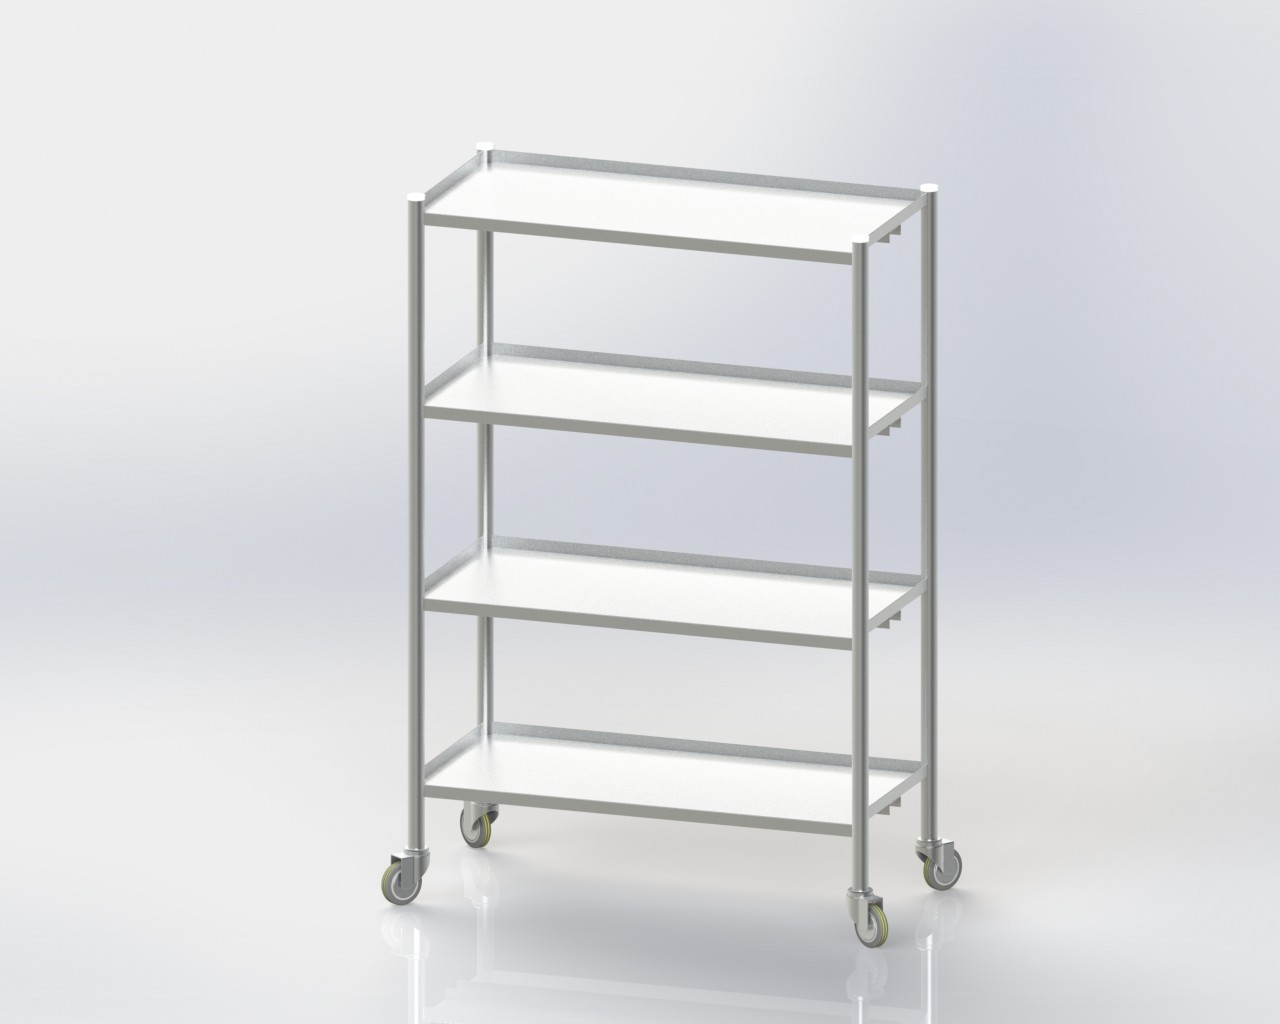 4 Storage Rack / Standard / Mobile